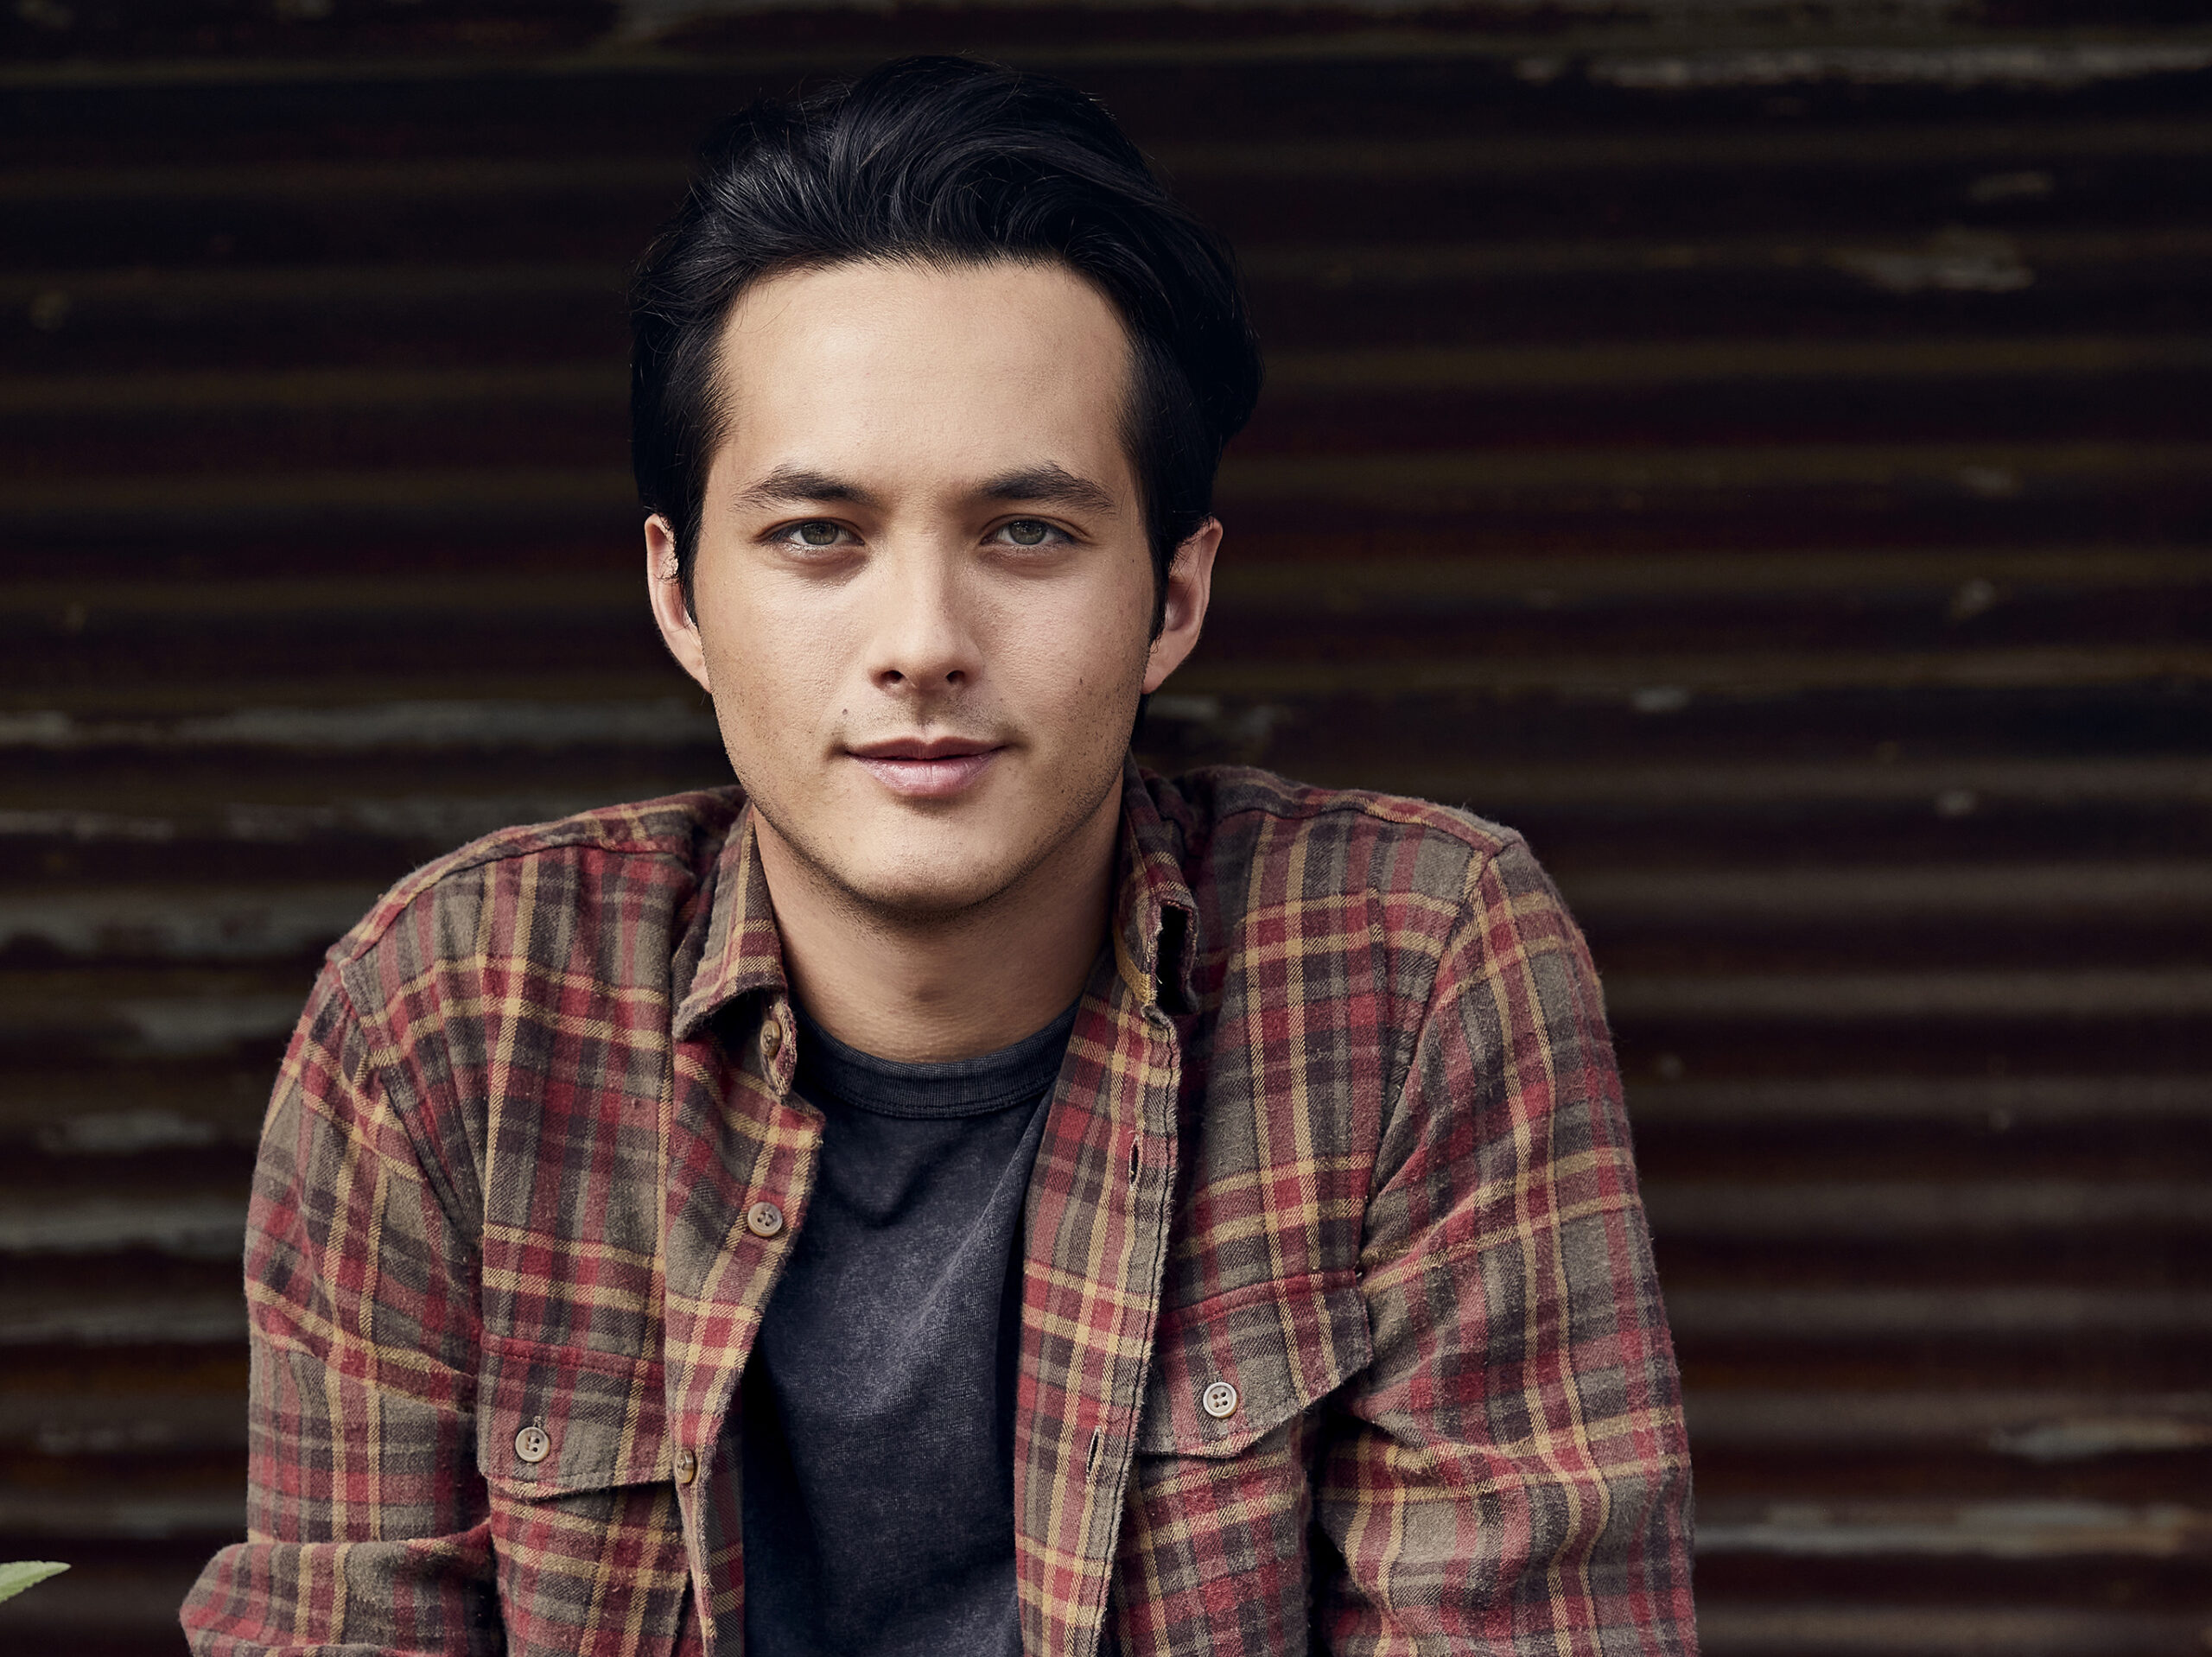 Laine Hardy, in a plaid button up shirt and a blue tshirt, smiles at the camera